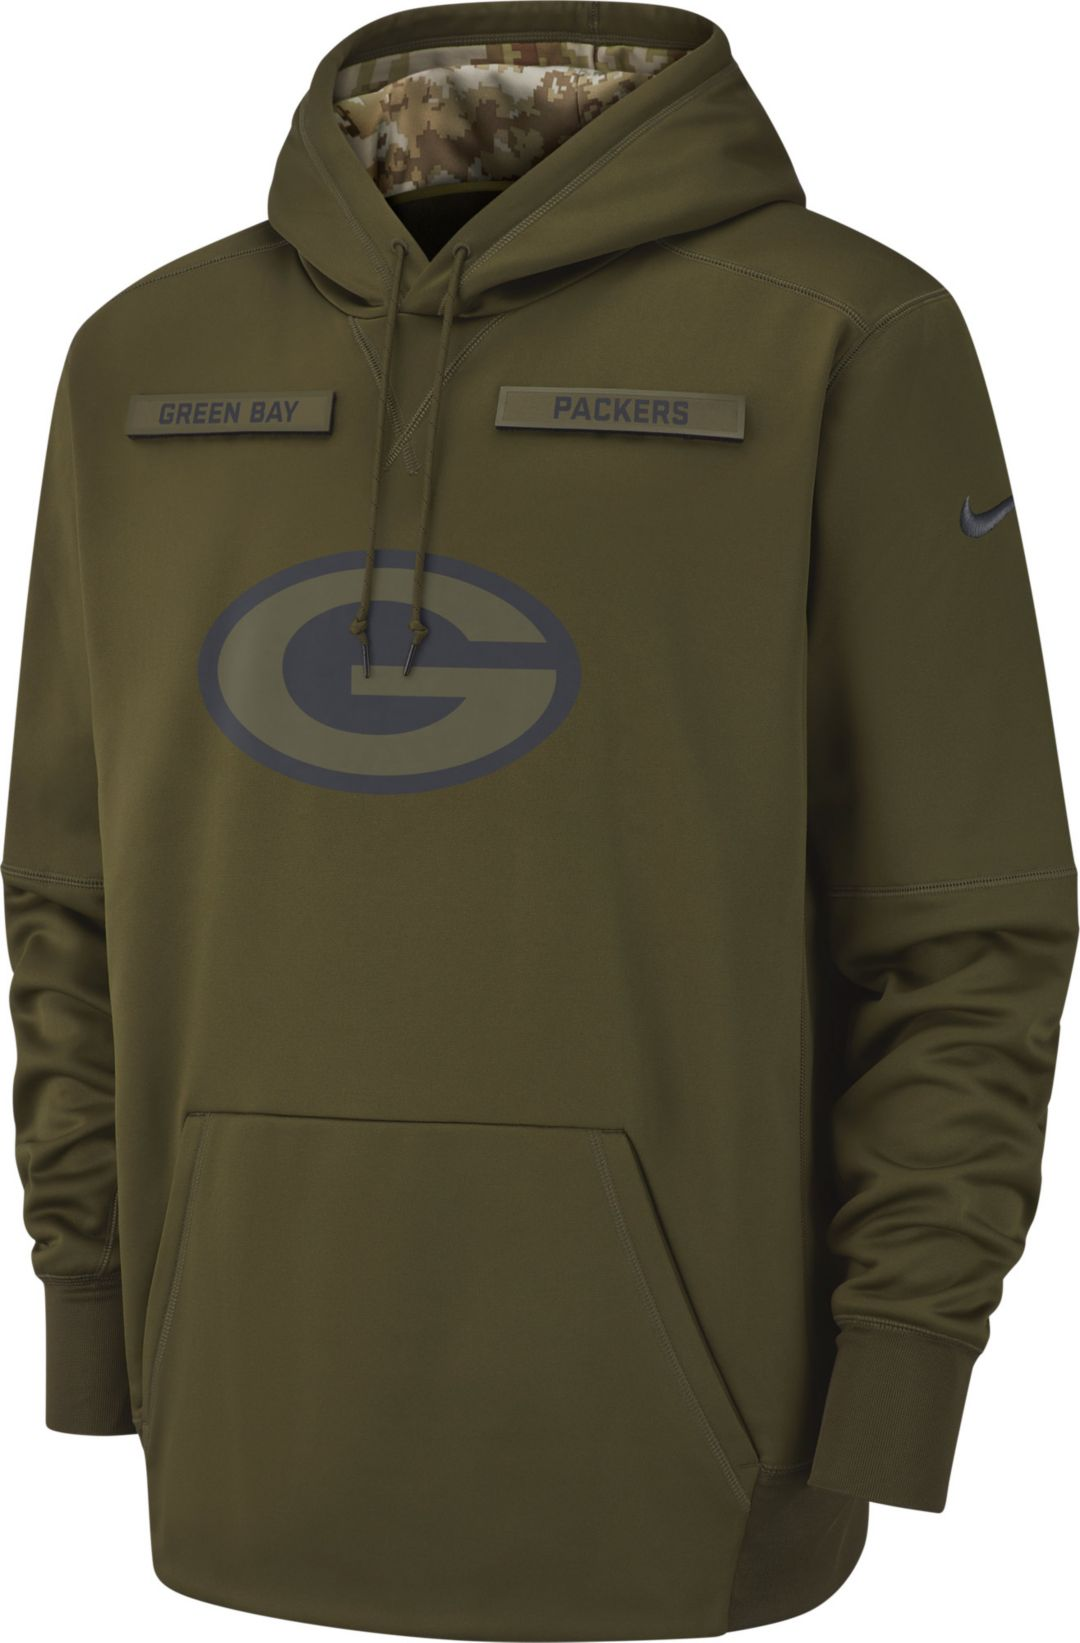 aa558bd5f6b Nike Men s Salute to Service Green Bay Packers Therma-FIT Performance  Hoodie 1